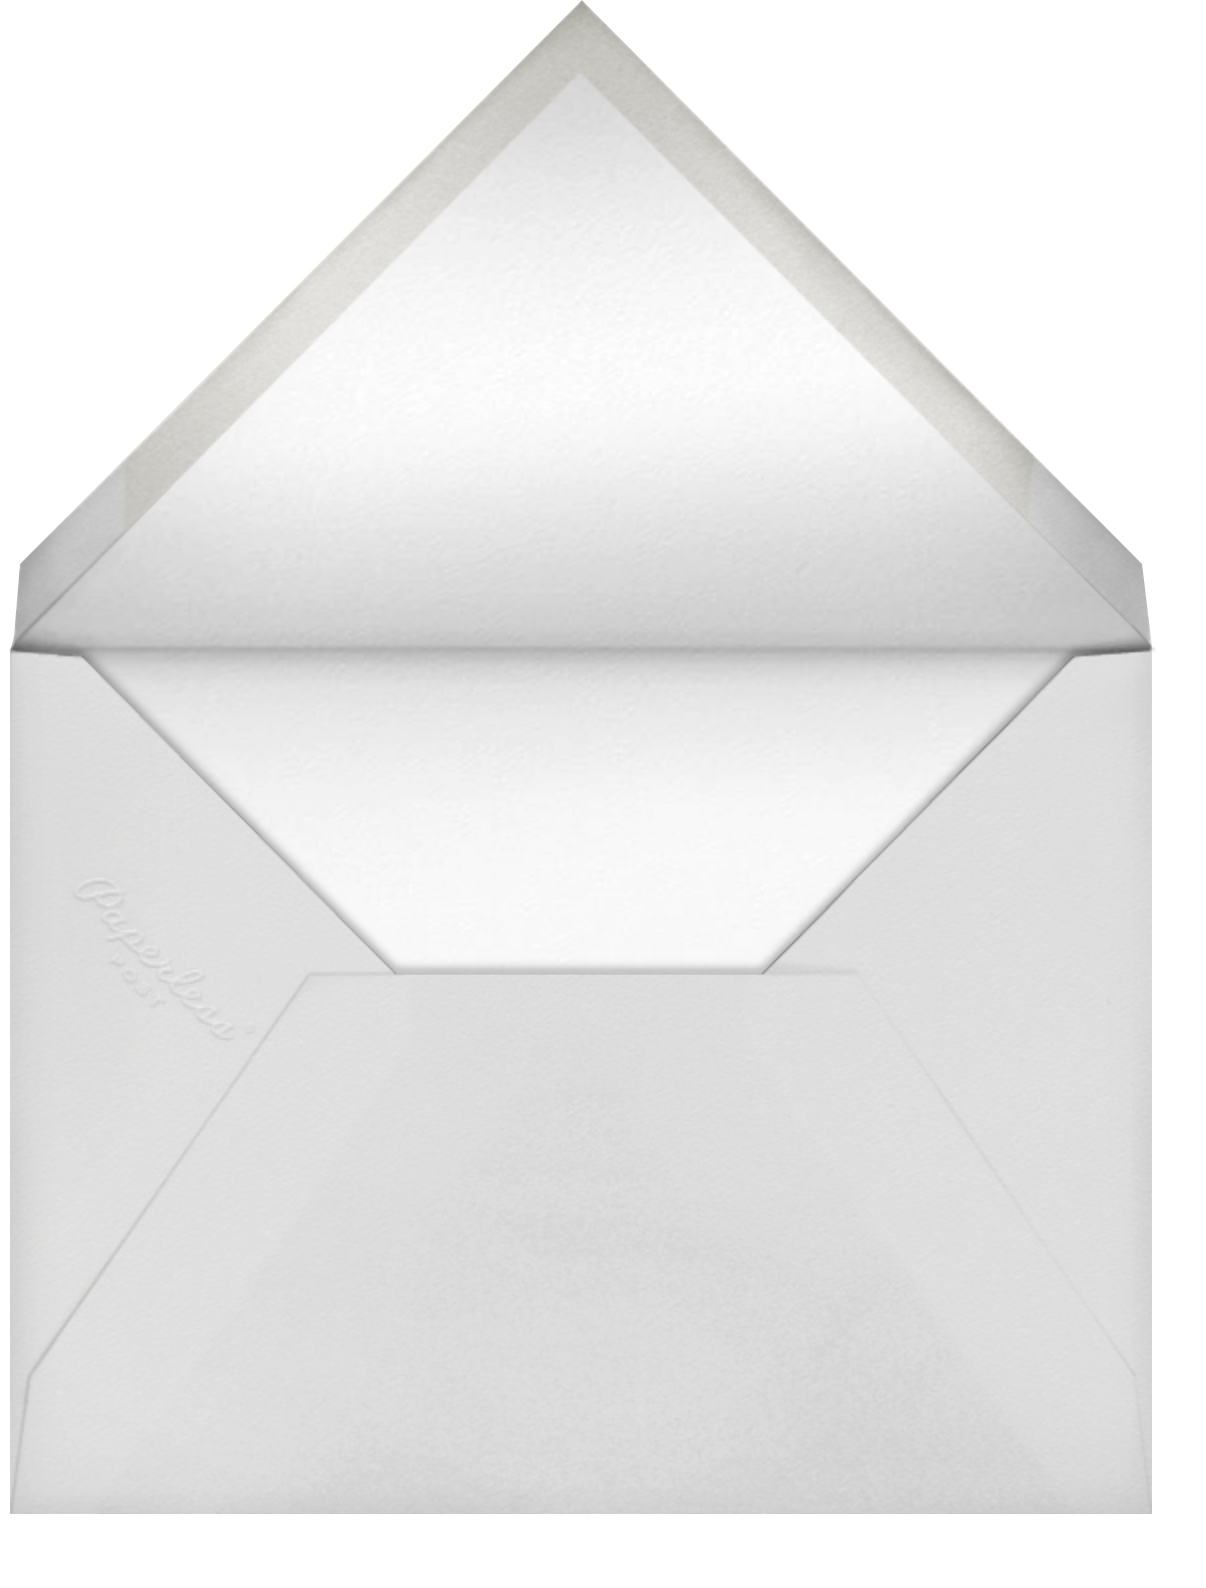 Bows and Bows - Linda and Harriett - null - envelope back